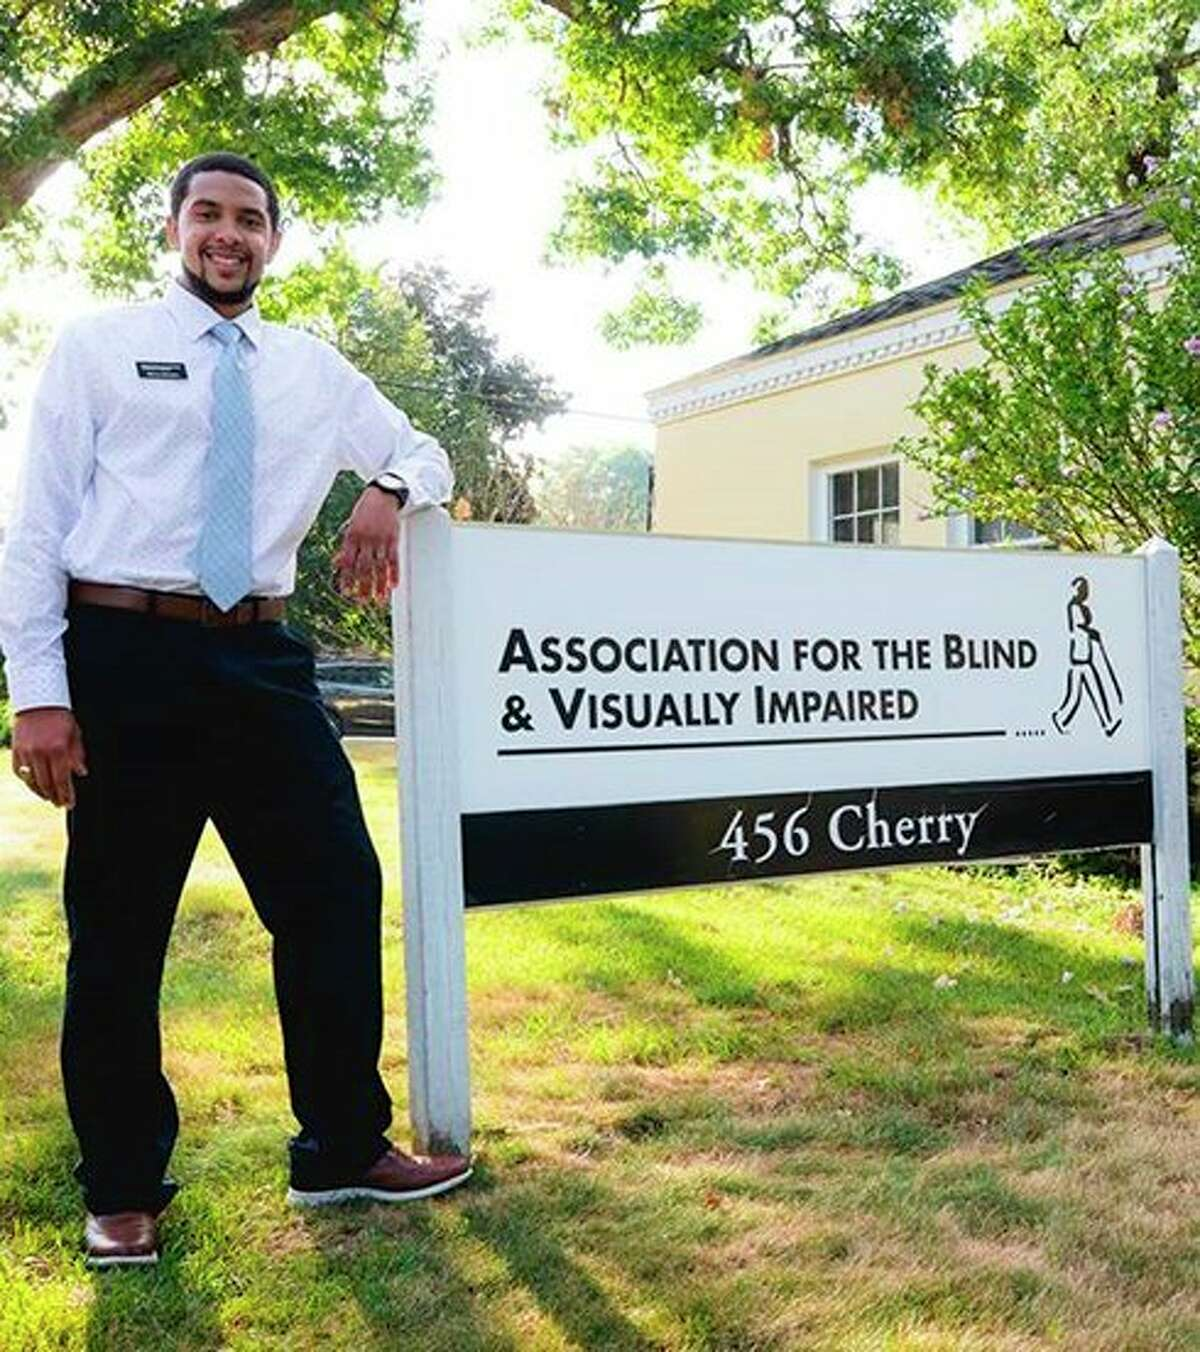 Ferris State University graduate Marcus Manders, the Executive Director of the Association for the Blind and Visually Impaired/Michigan, will speak on Wednesday, Oct. 6, in Room 203 of the University Center building, as part of Disability Awareness Month programming on campus. (Courtesy photo)